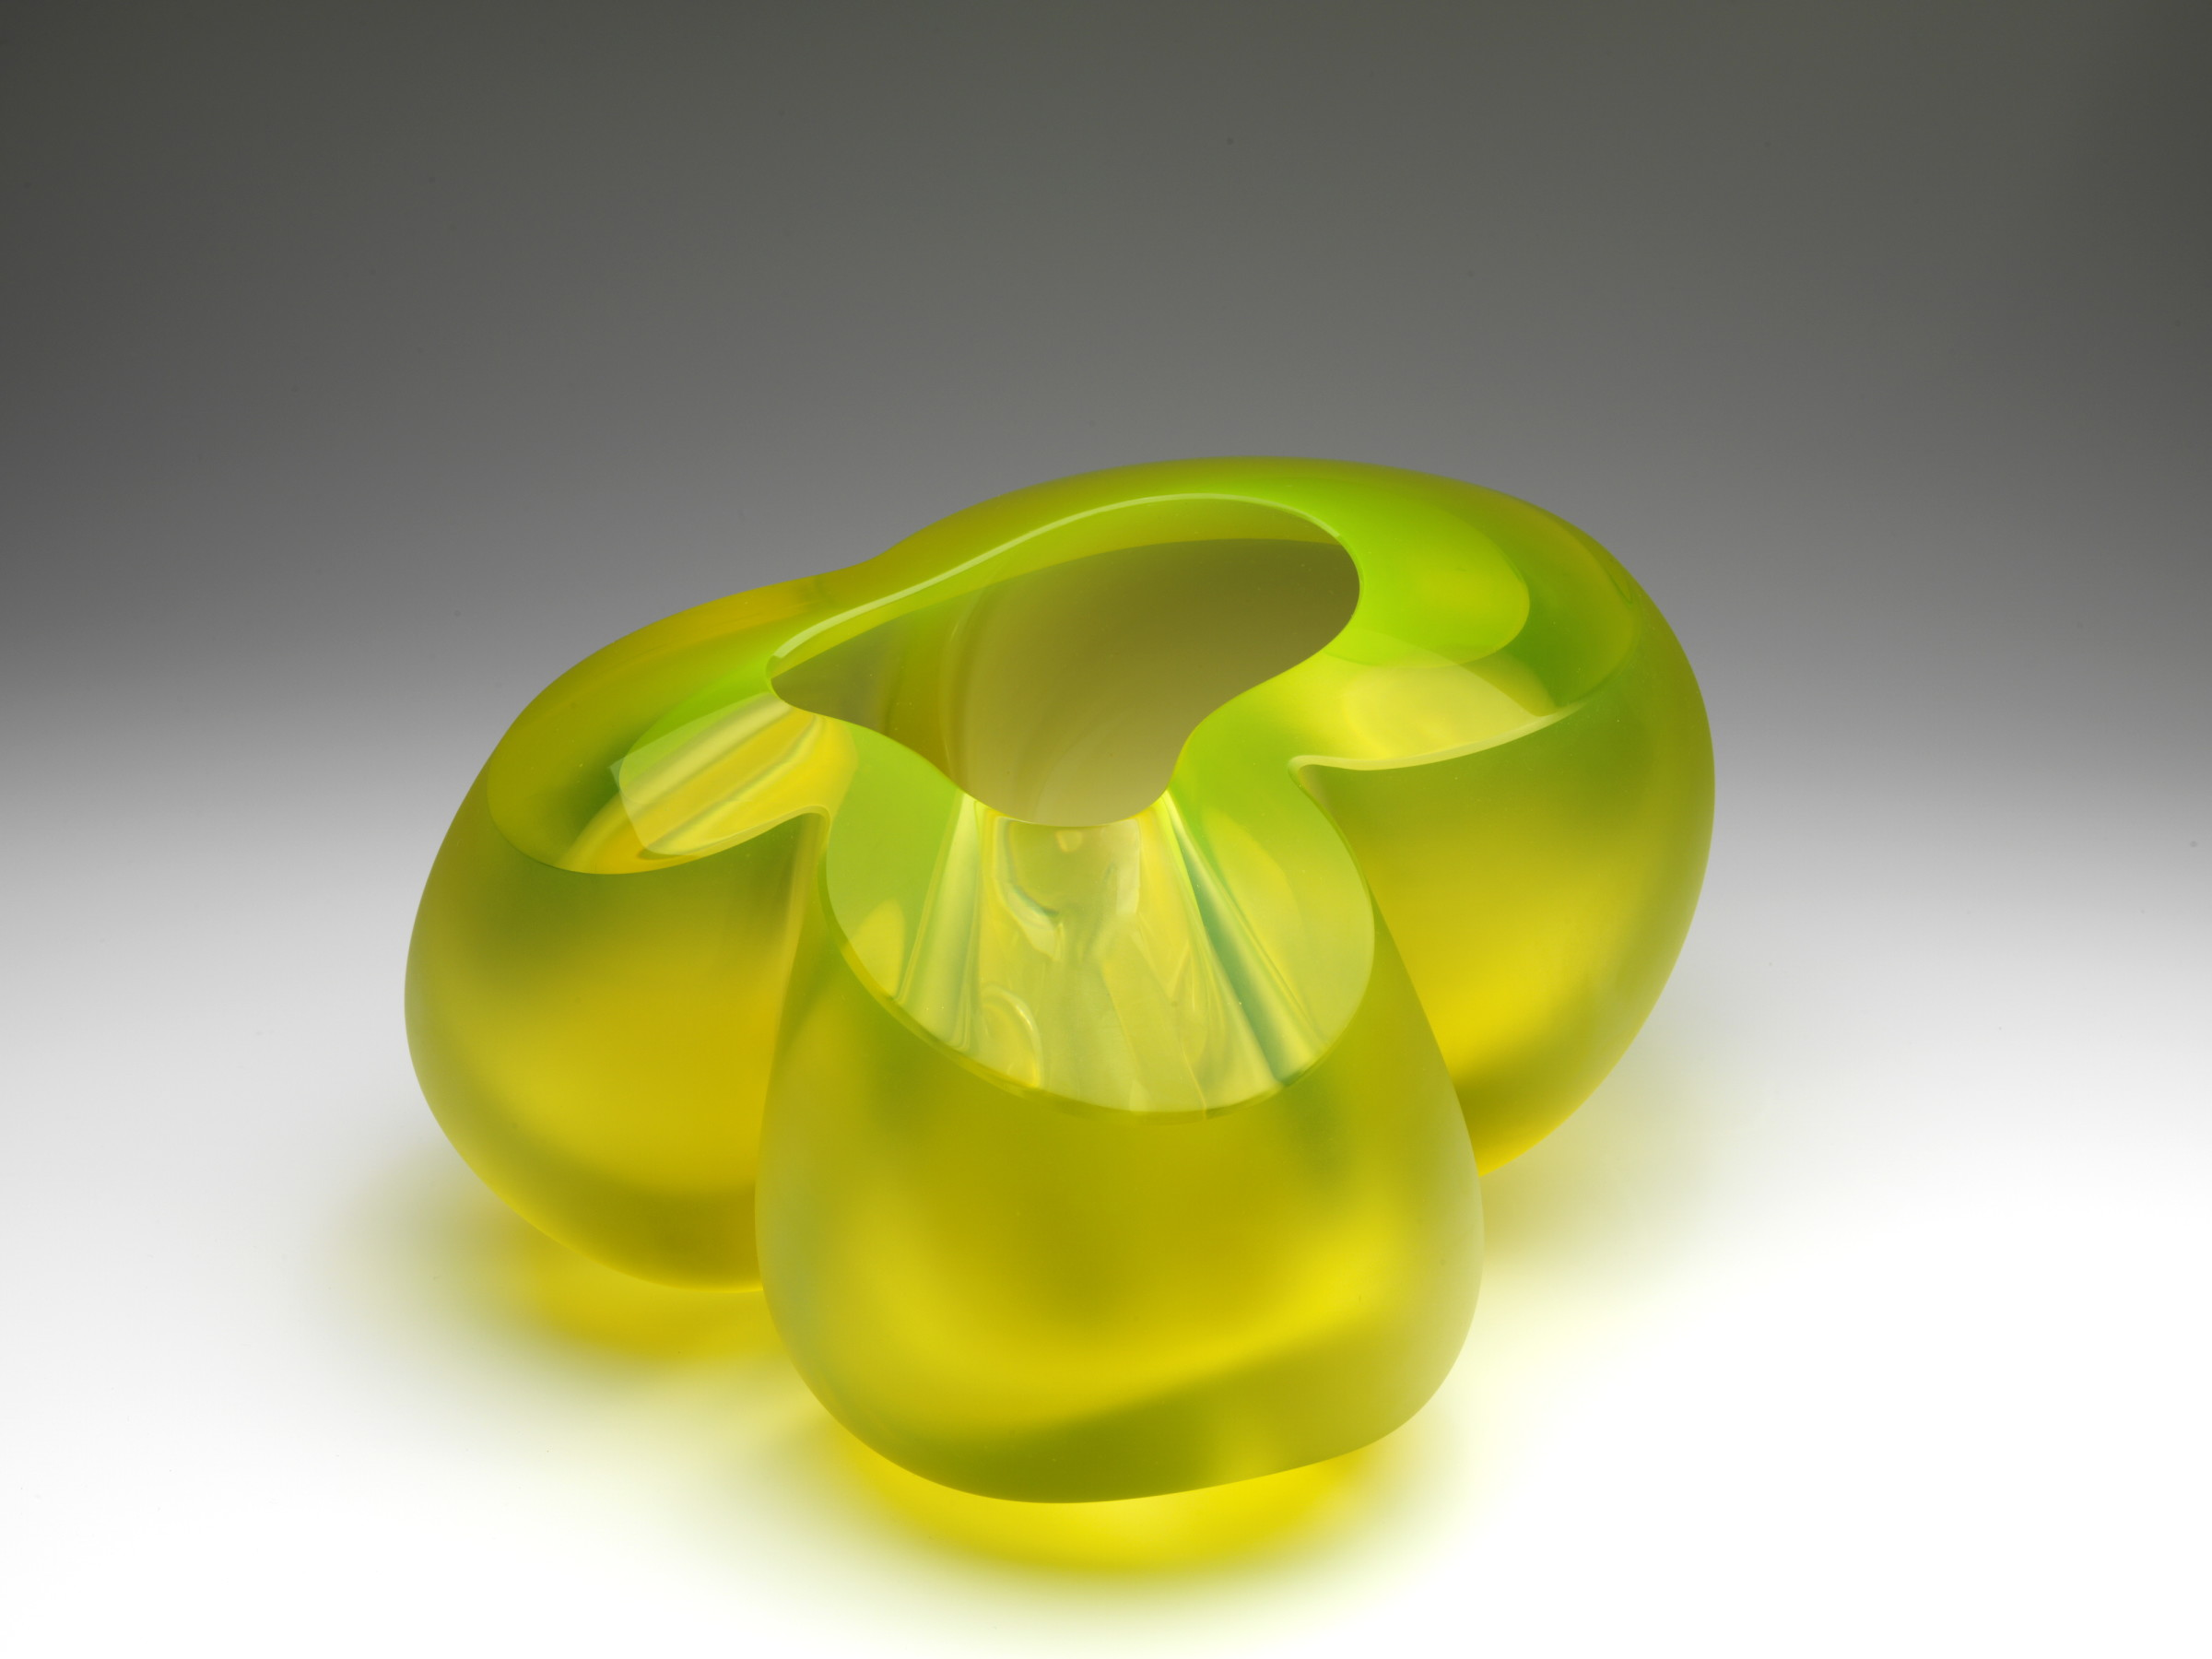 "<span class=""link fancybox-details-link""><a href=""/exhibitions/23/works/artworks5492/"">View Detail Page</a></span><div class=""medium"">Uranium glass, blowing, hand-formed, sandblasting</div> <div class=""dimensions"">28 x 26 x 15 cm</div>"